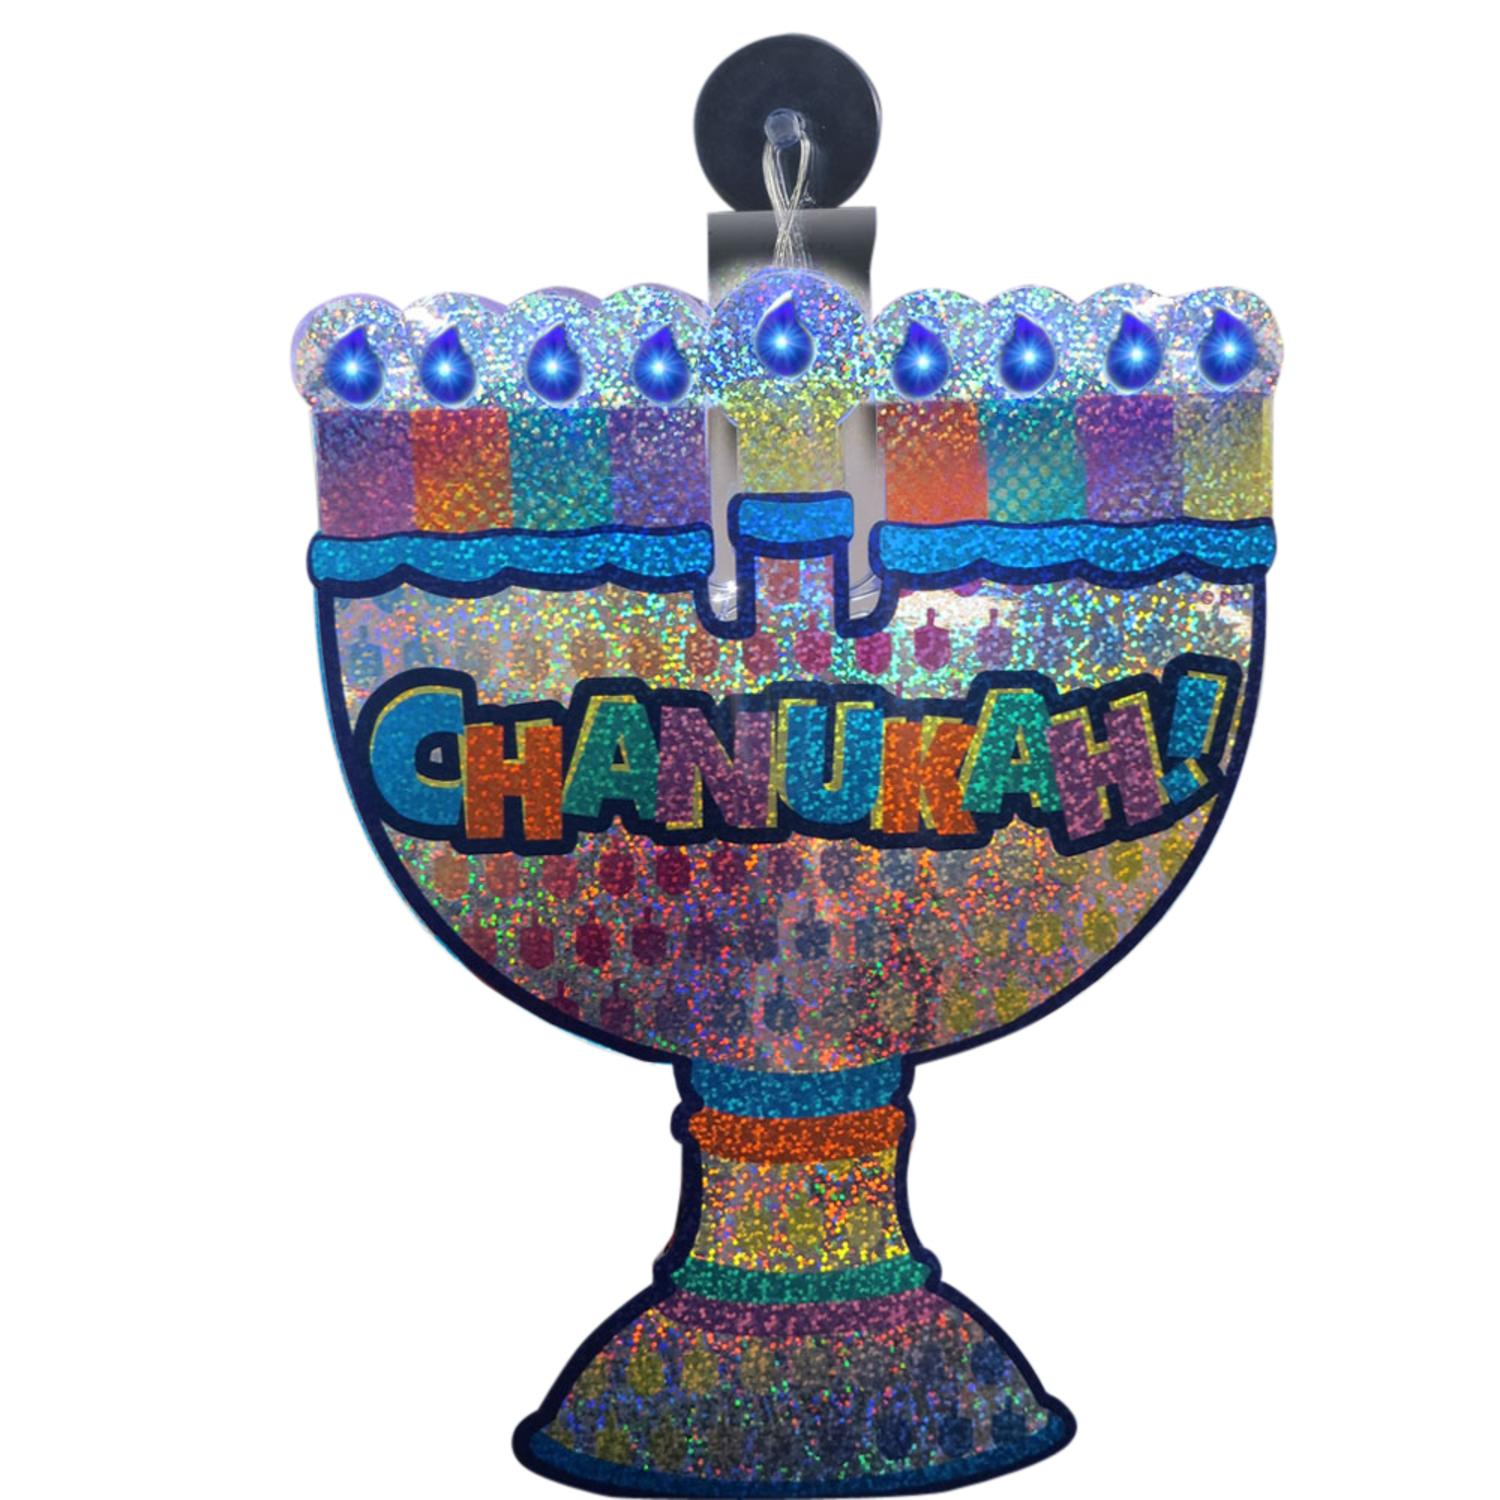 10 Quot Battery Operated Shiny Led Lighted Quot Chanukah Quot Menorah